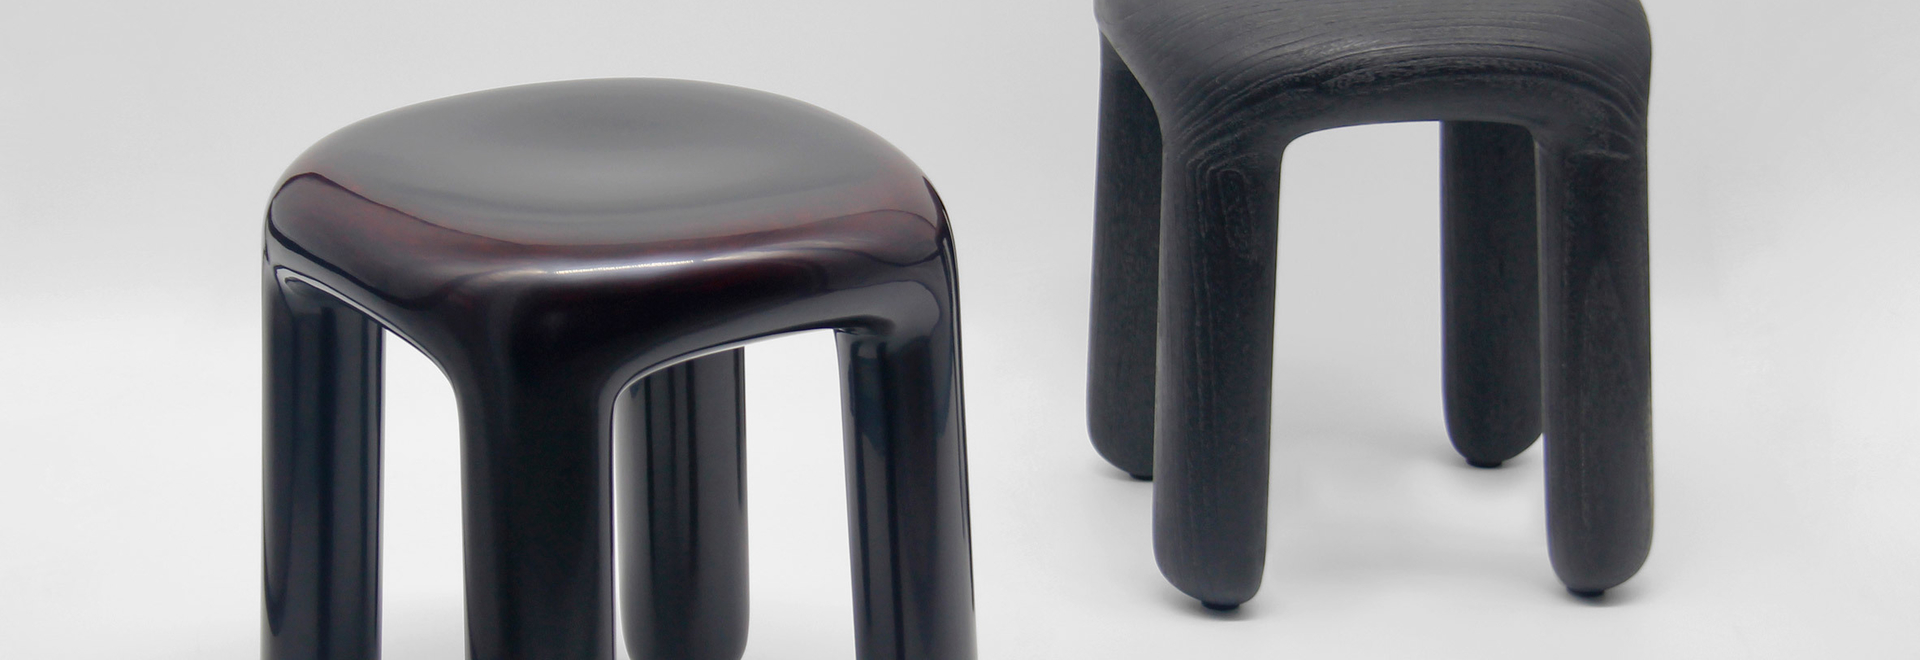 Ming Design Studio made the Bold stools from wood and lacquer